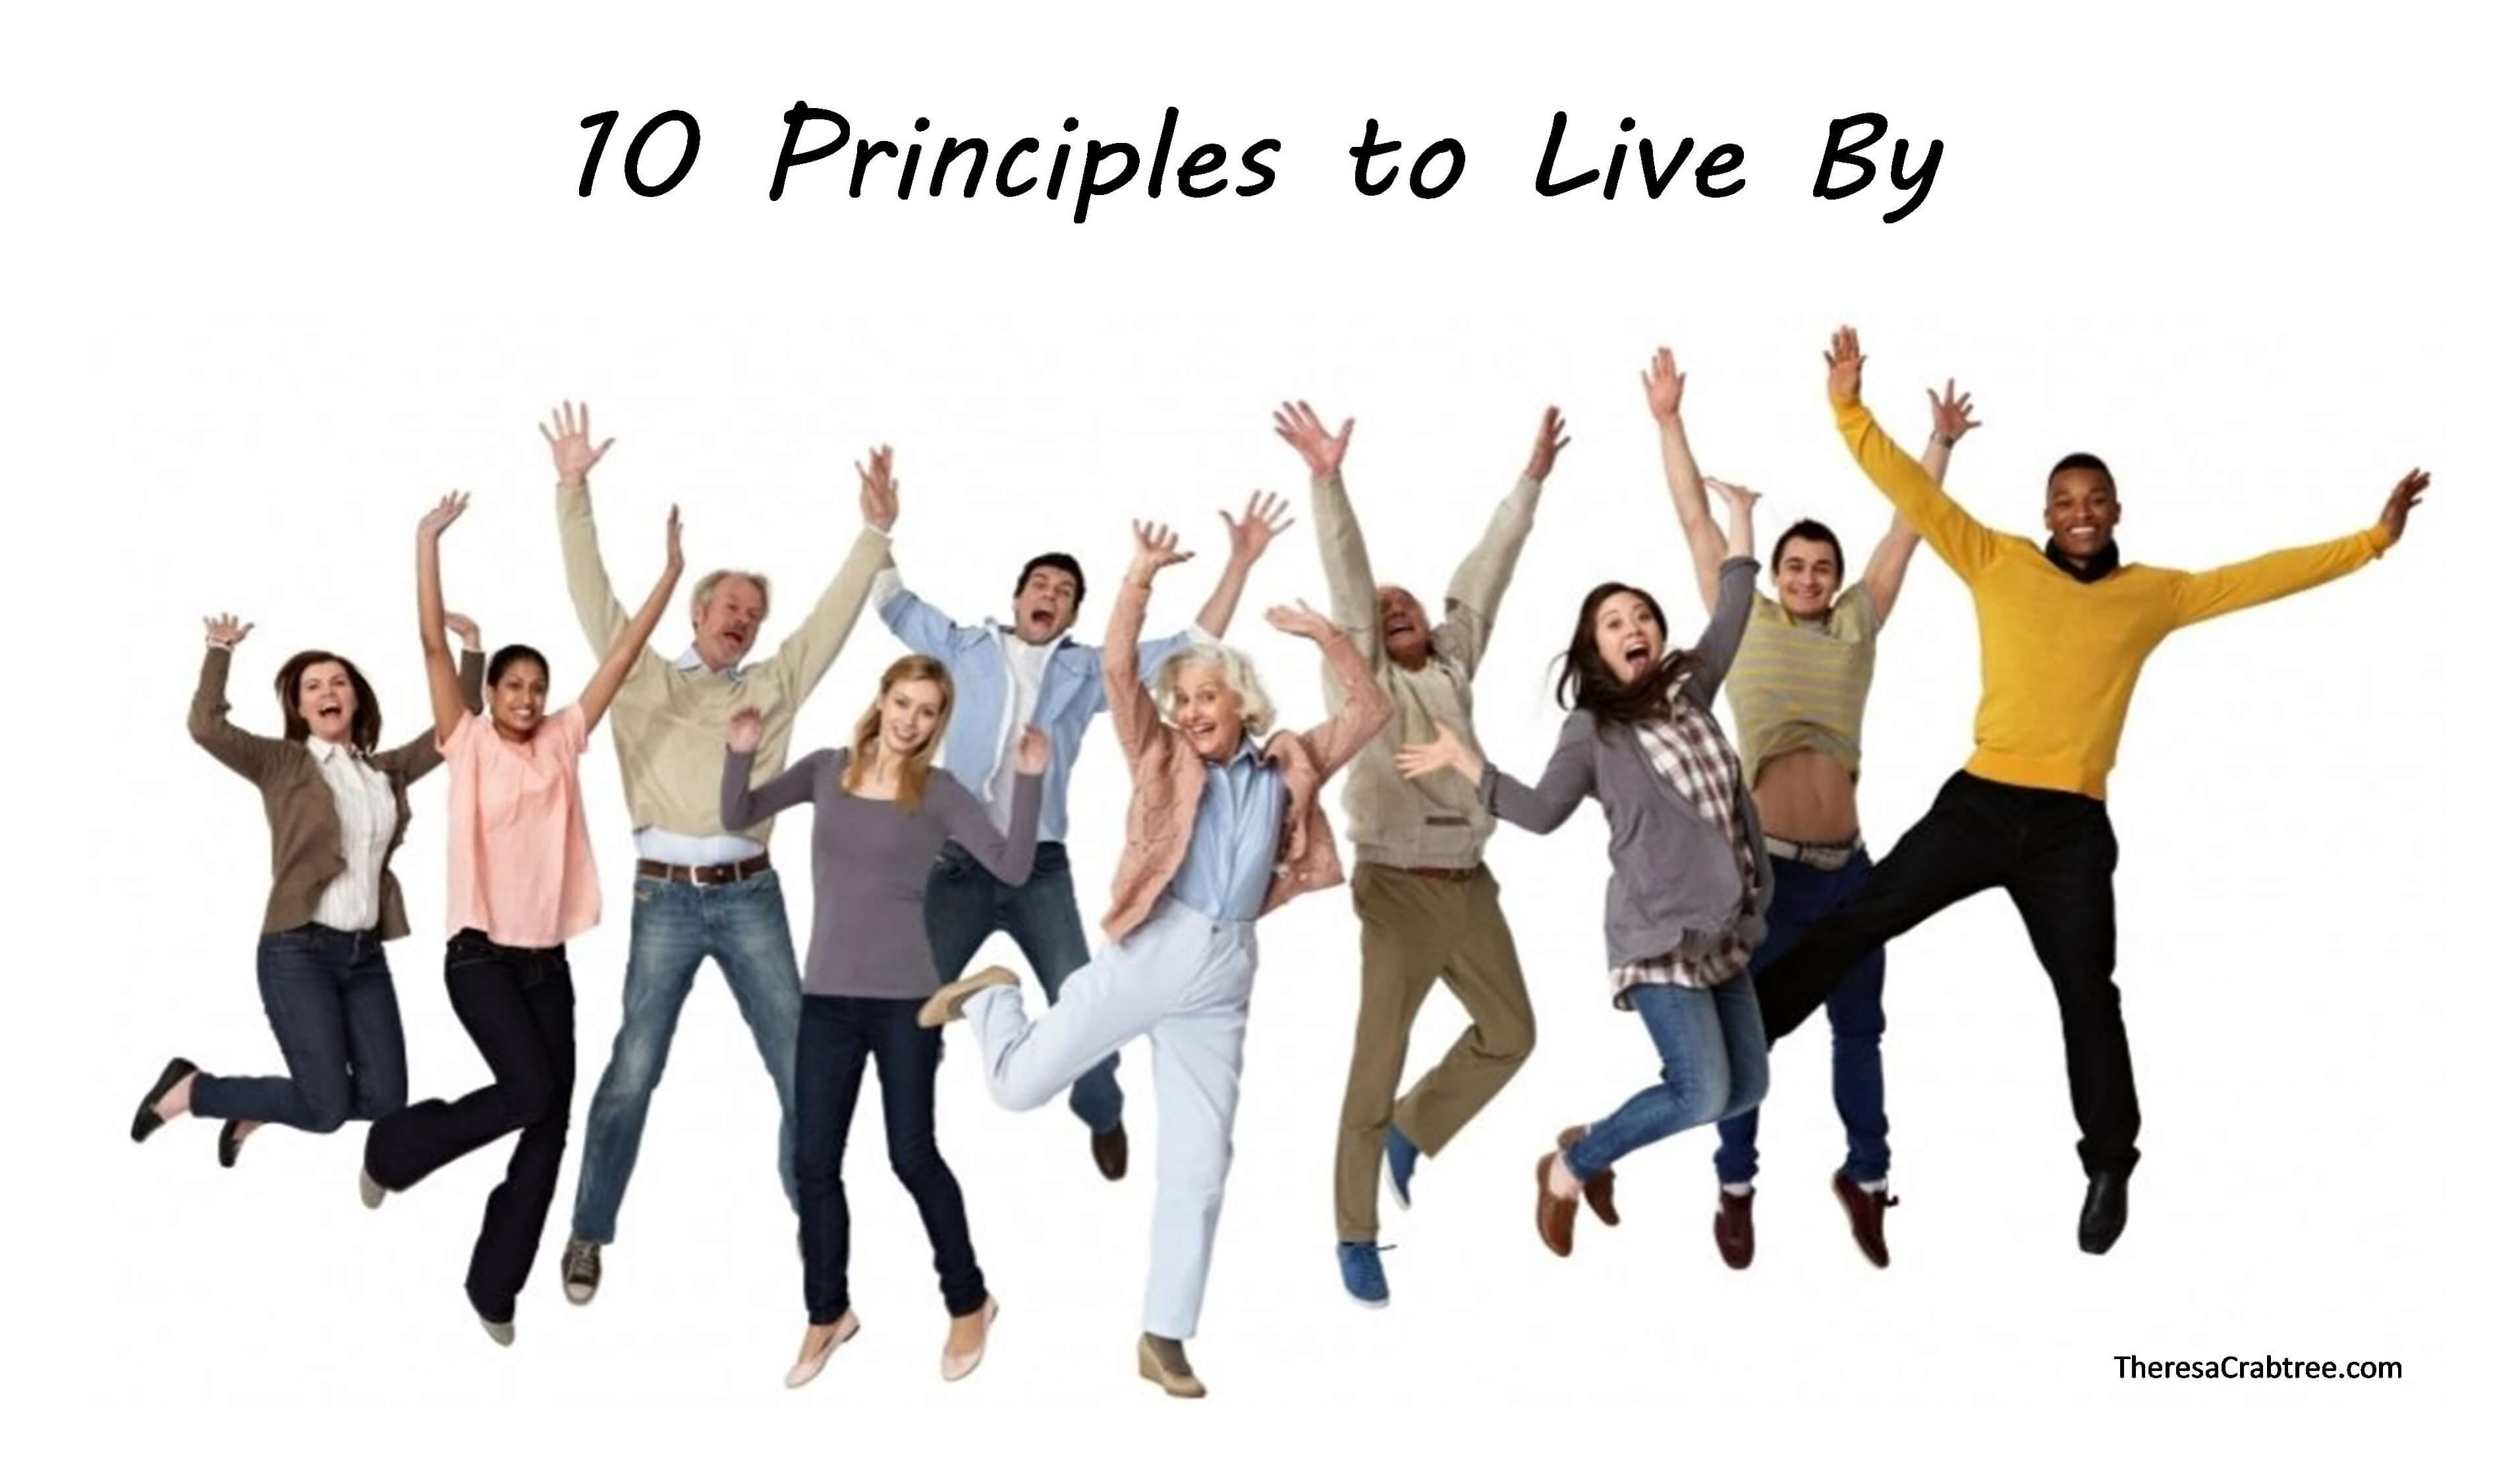 10 Principles to Live By